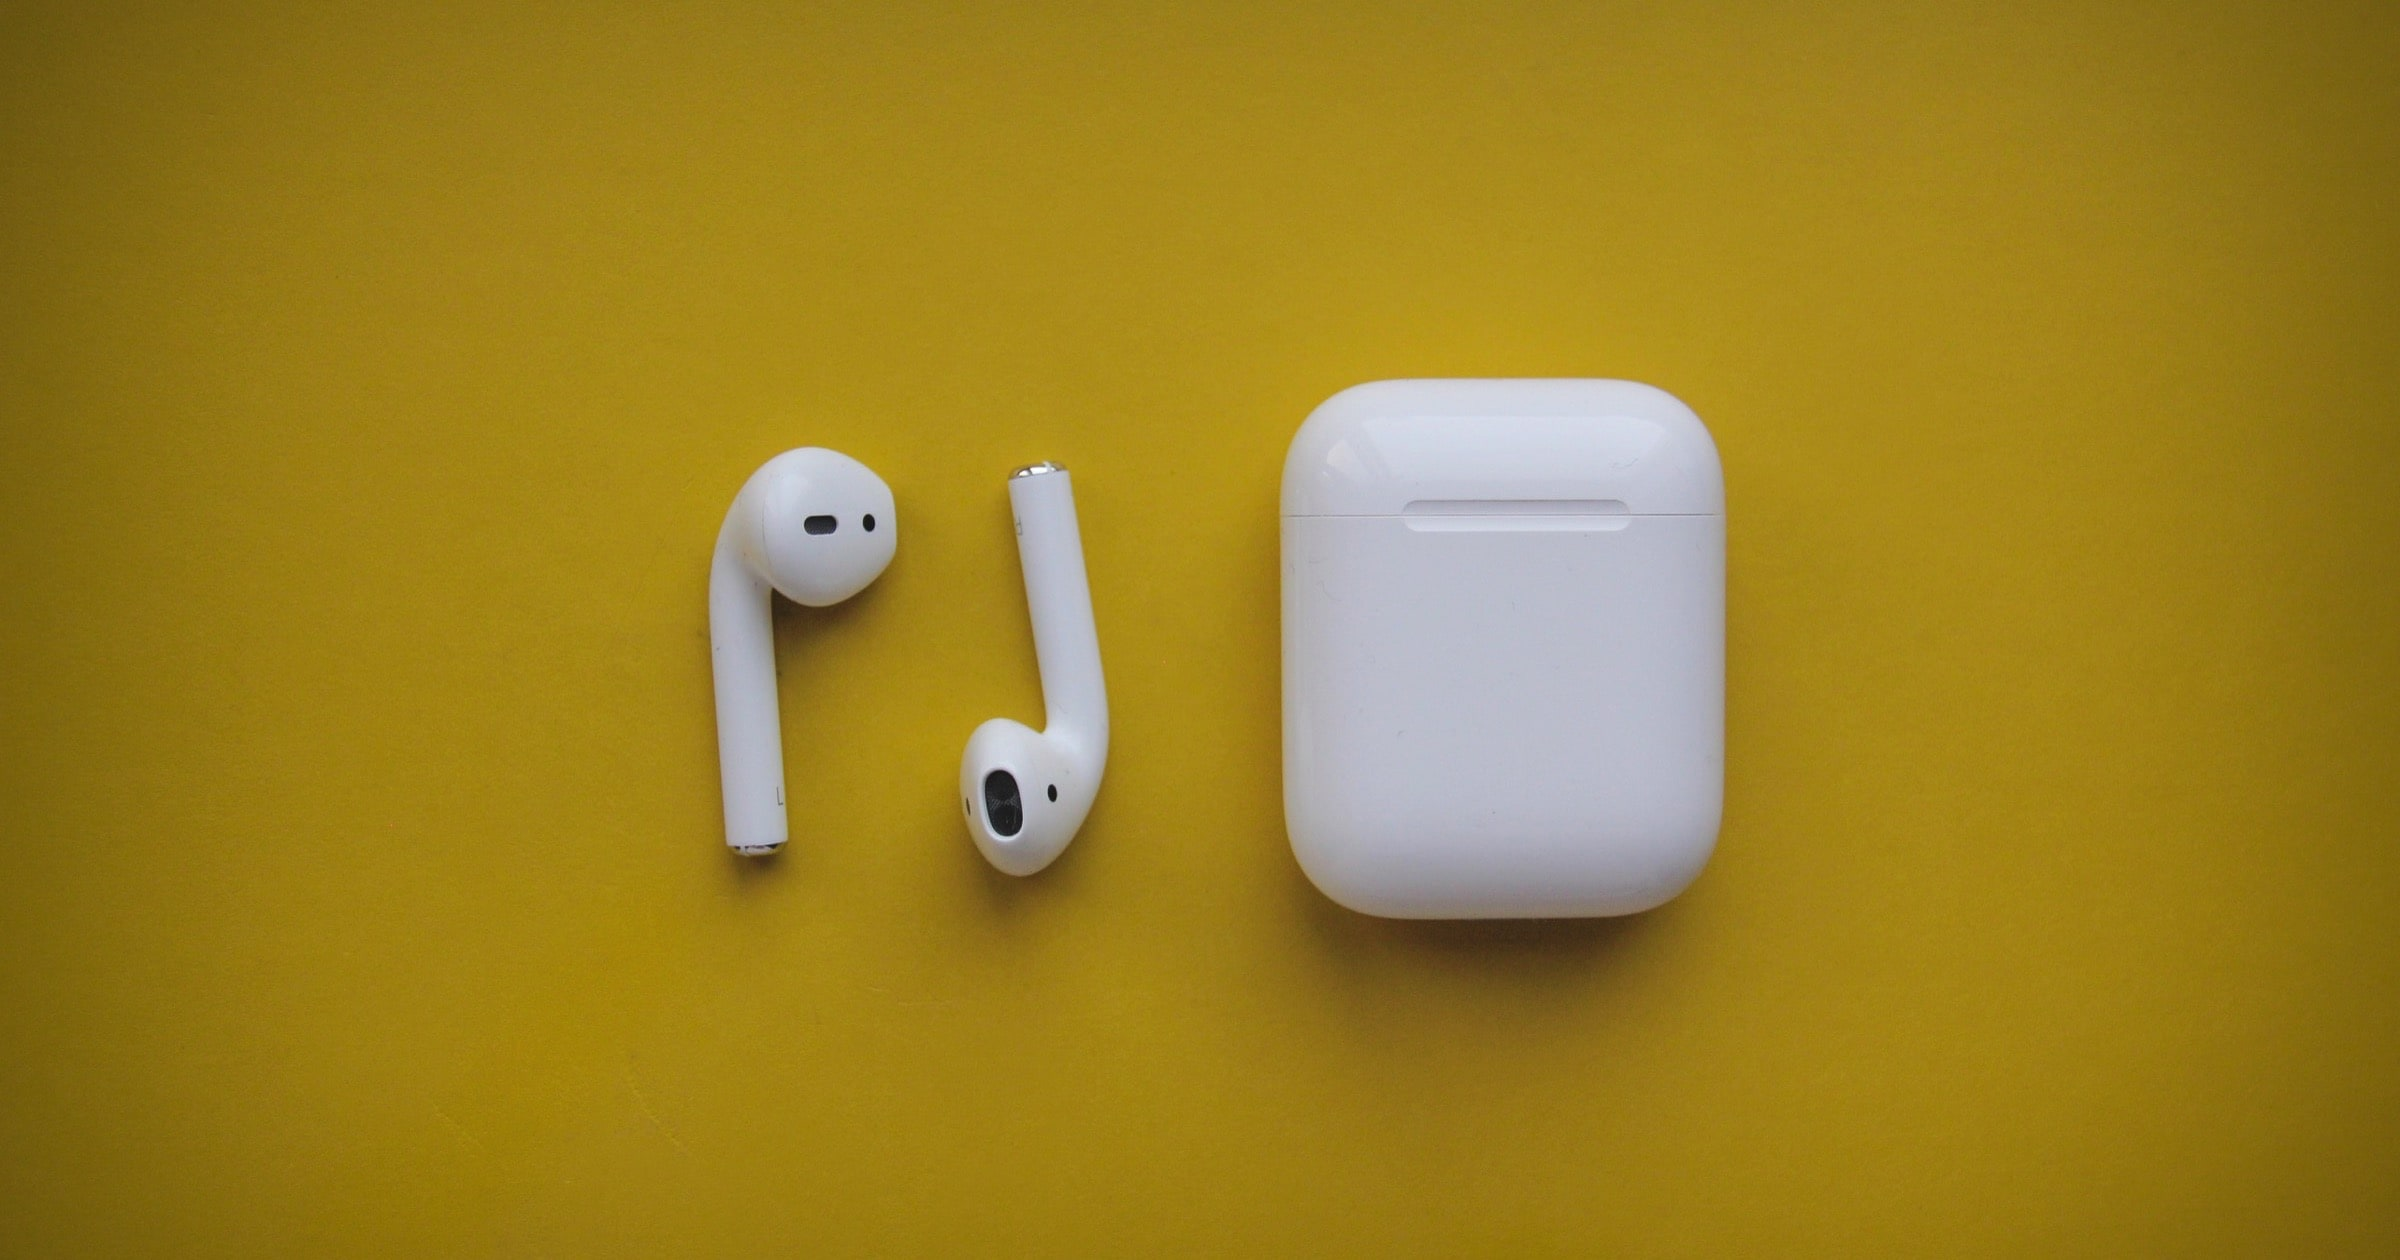 airpods on yellow background